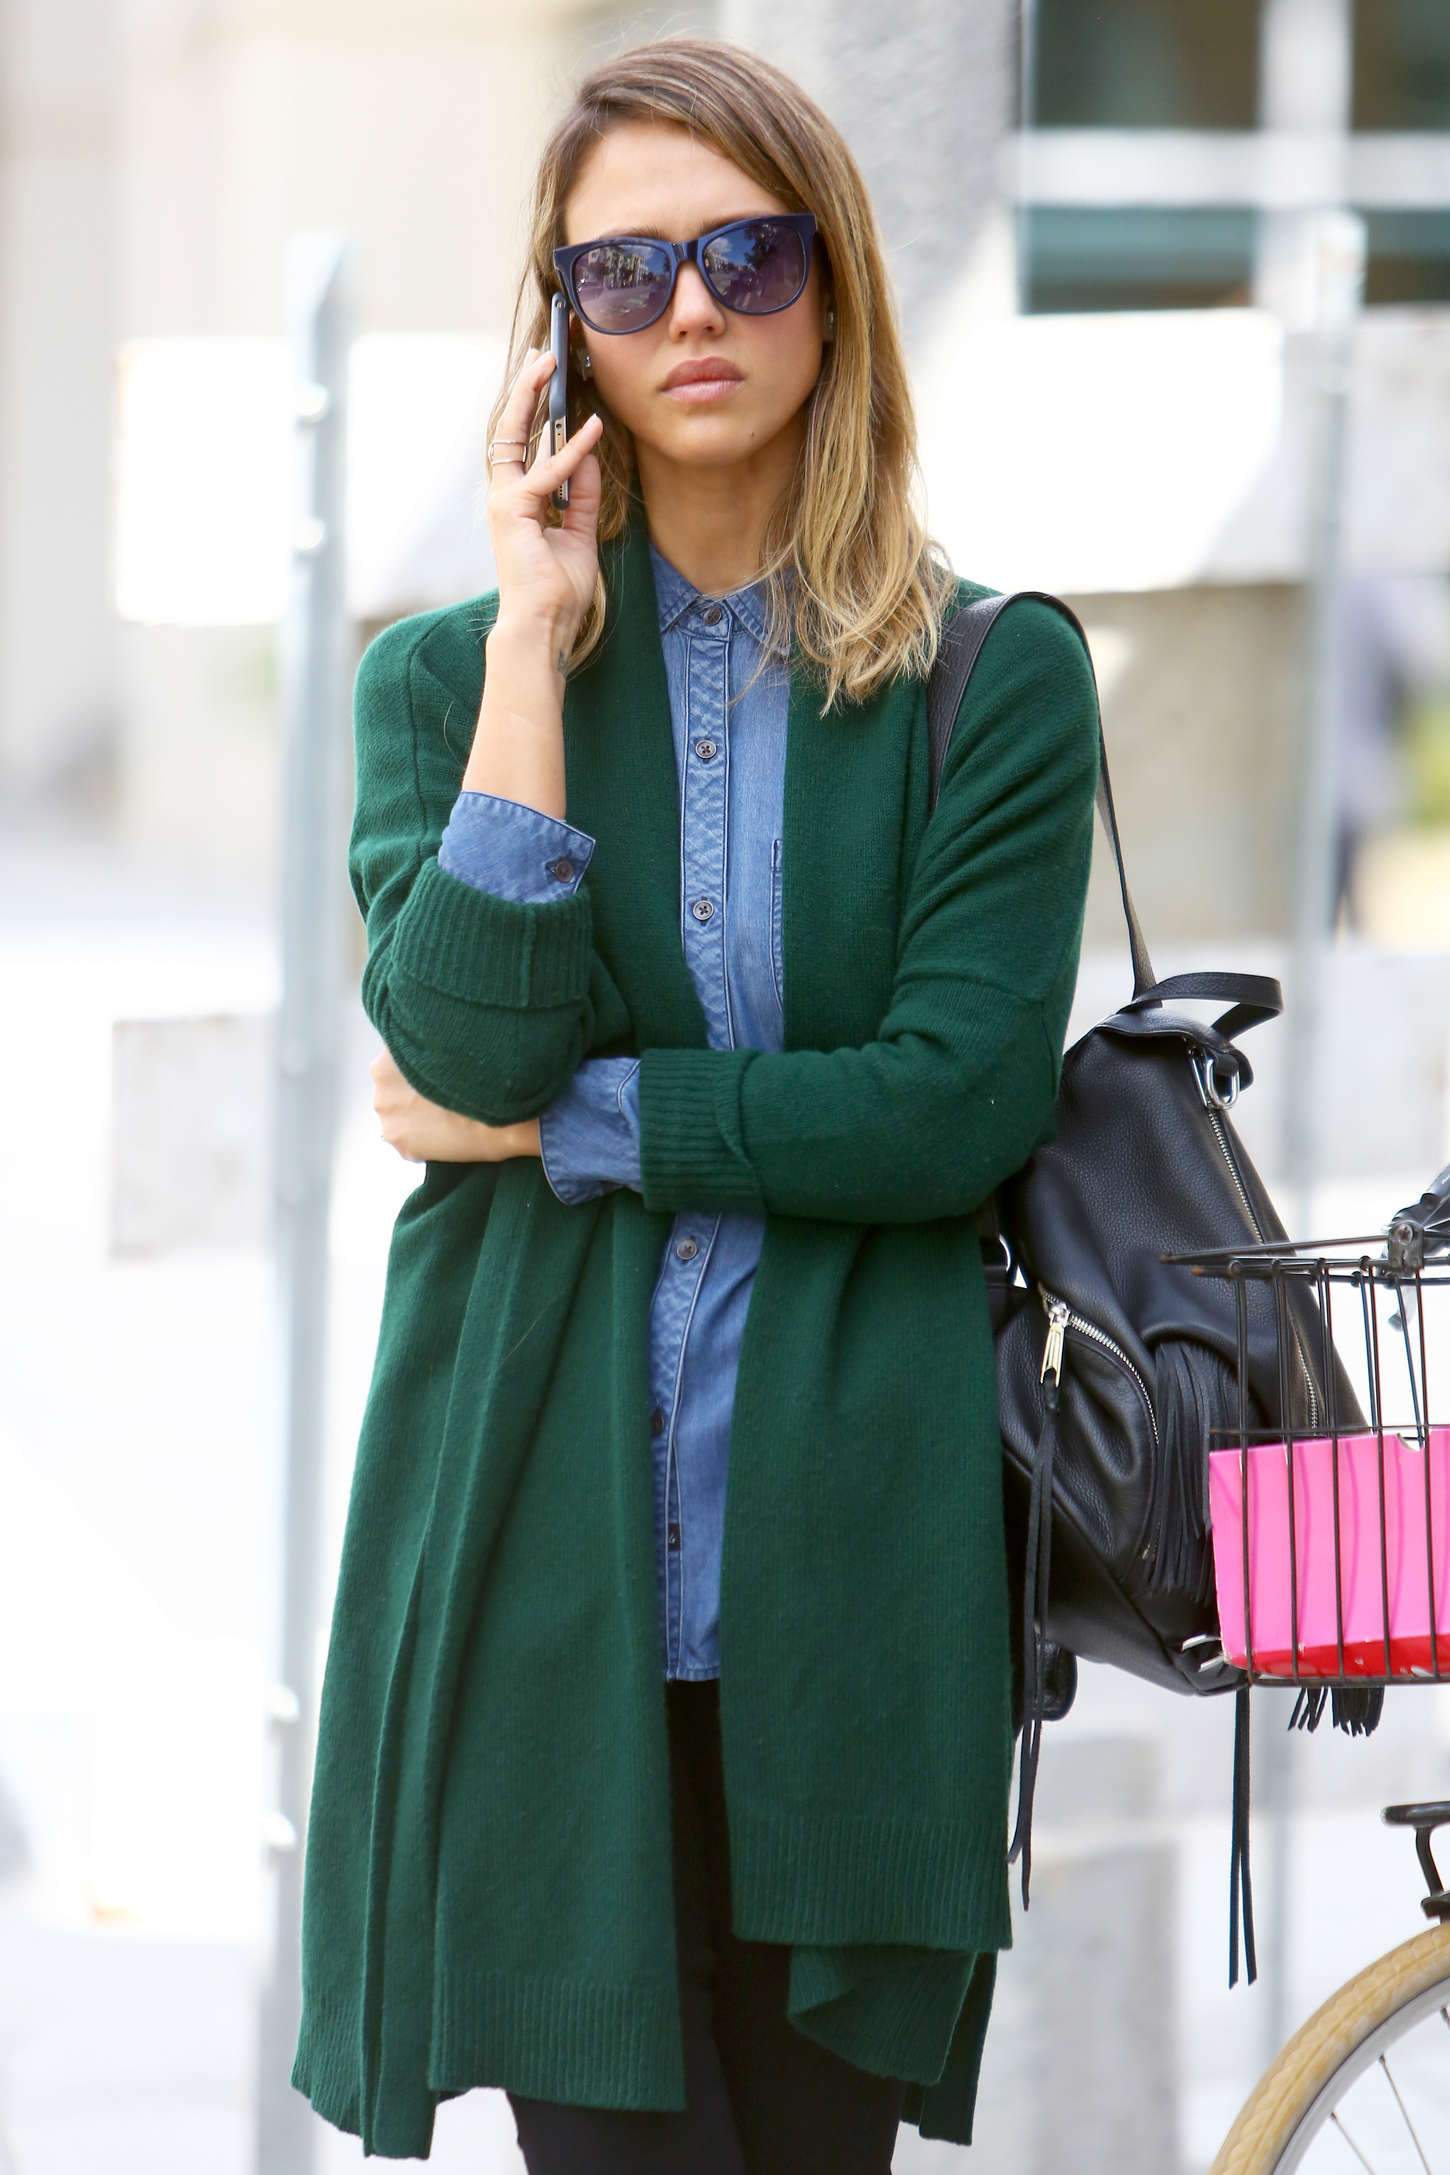 http://www.gotceleb.com/wp-content/uploads/photos/jessica-alba/in-green-sweaters-out-in-santa-monica/Jessica-Alba-in-Green-Sweaters--15.jpg